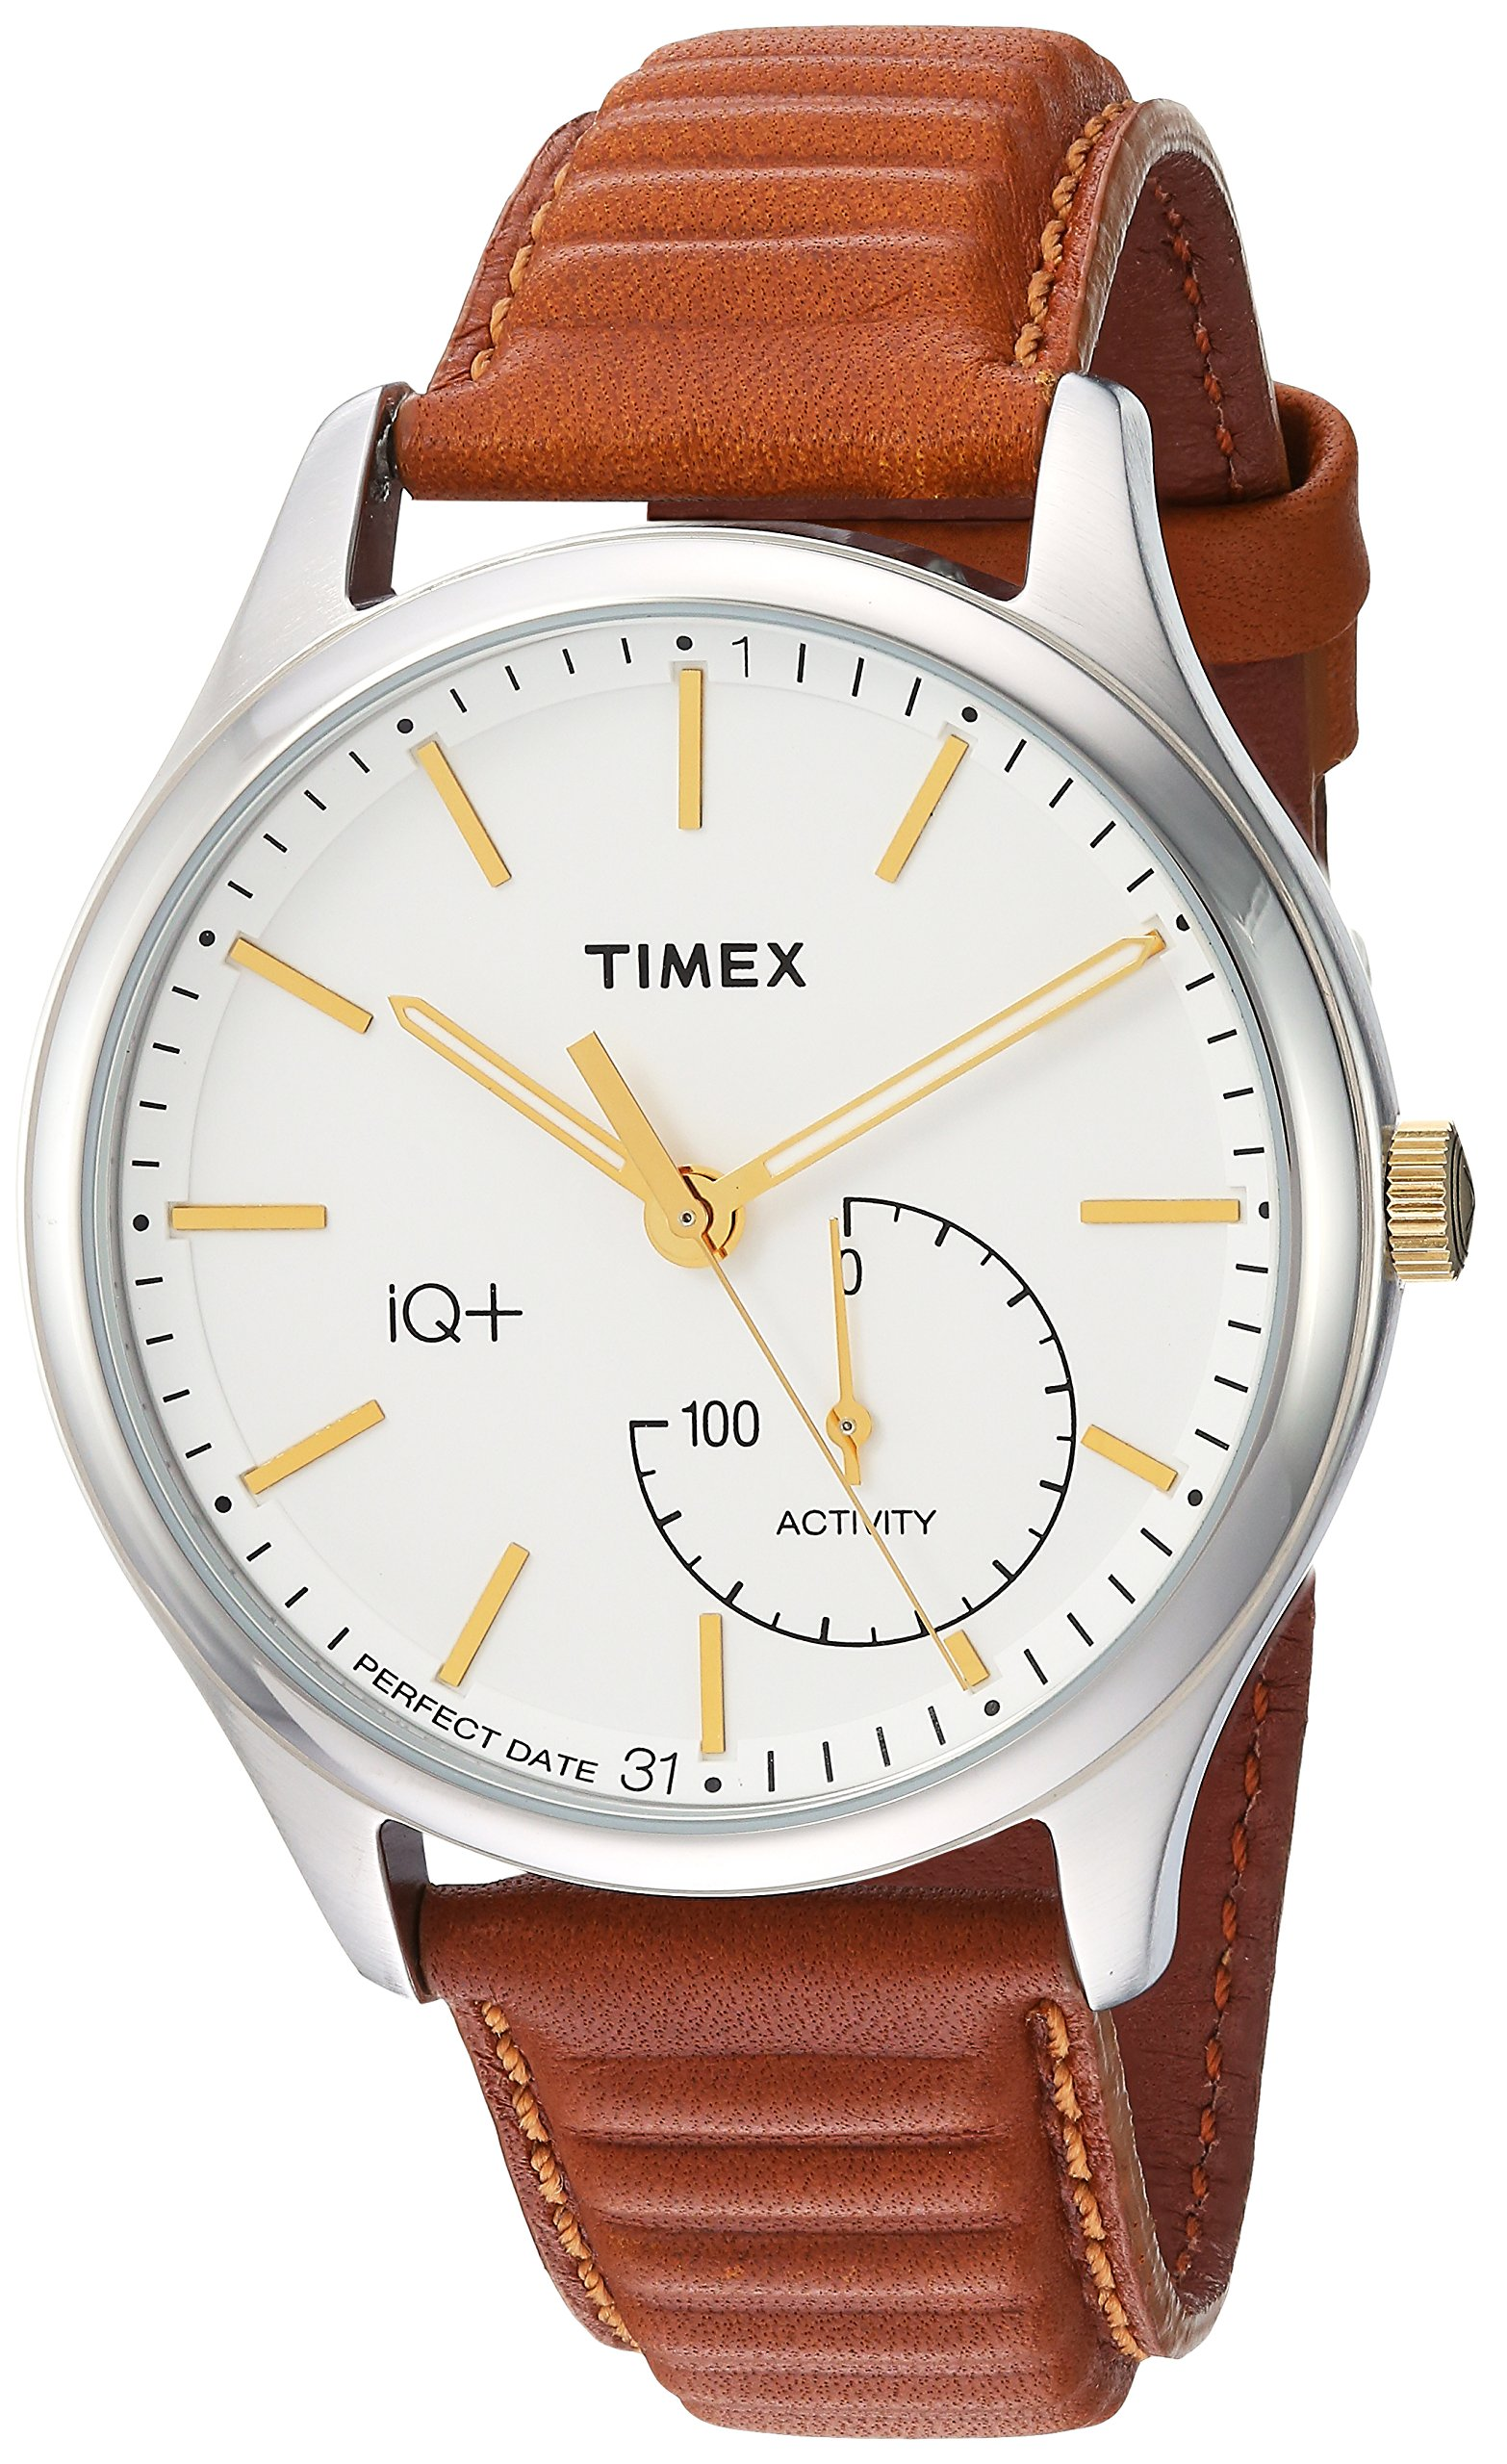 Timex Men's TW2P94700 IQ+ Move Activity Tracker Caramel Brown Leather Strap Smart Watch